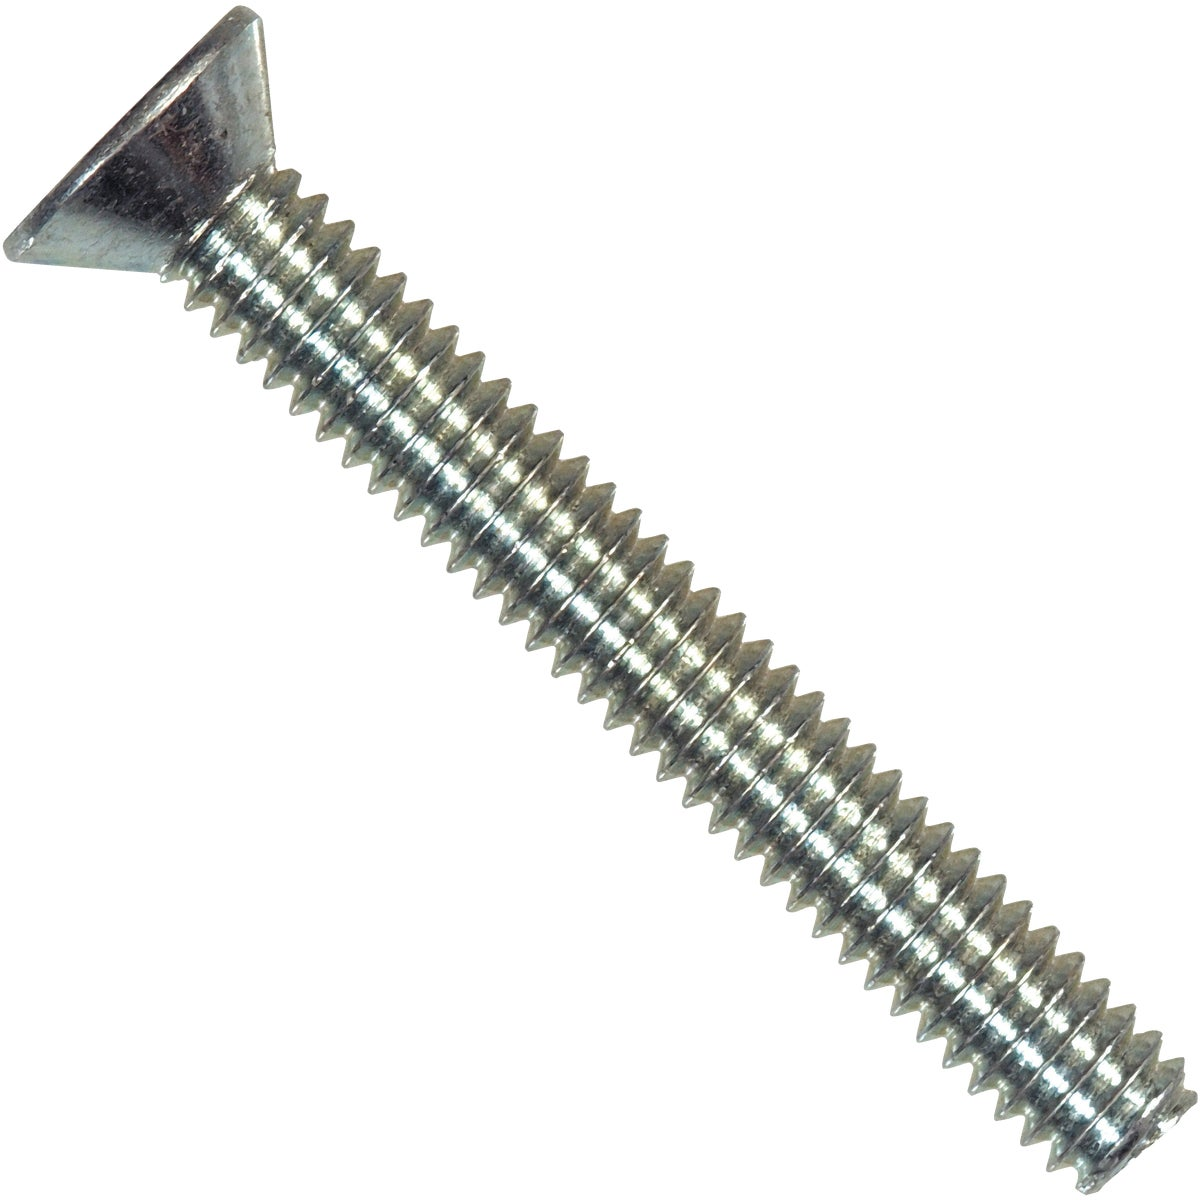 10-24X1-1/4 P MACH SCREW - 101080 by Hillman Fastener